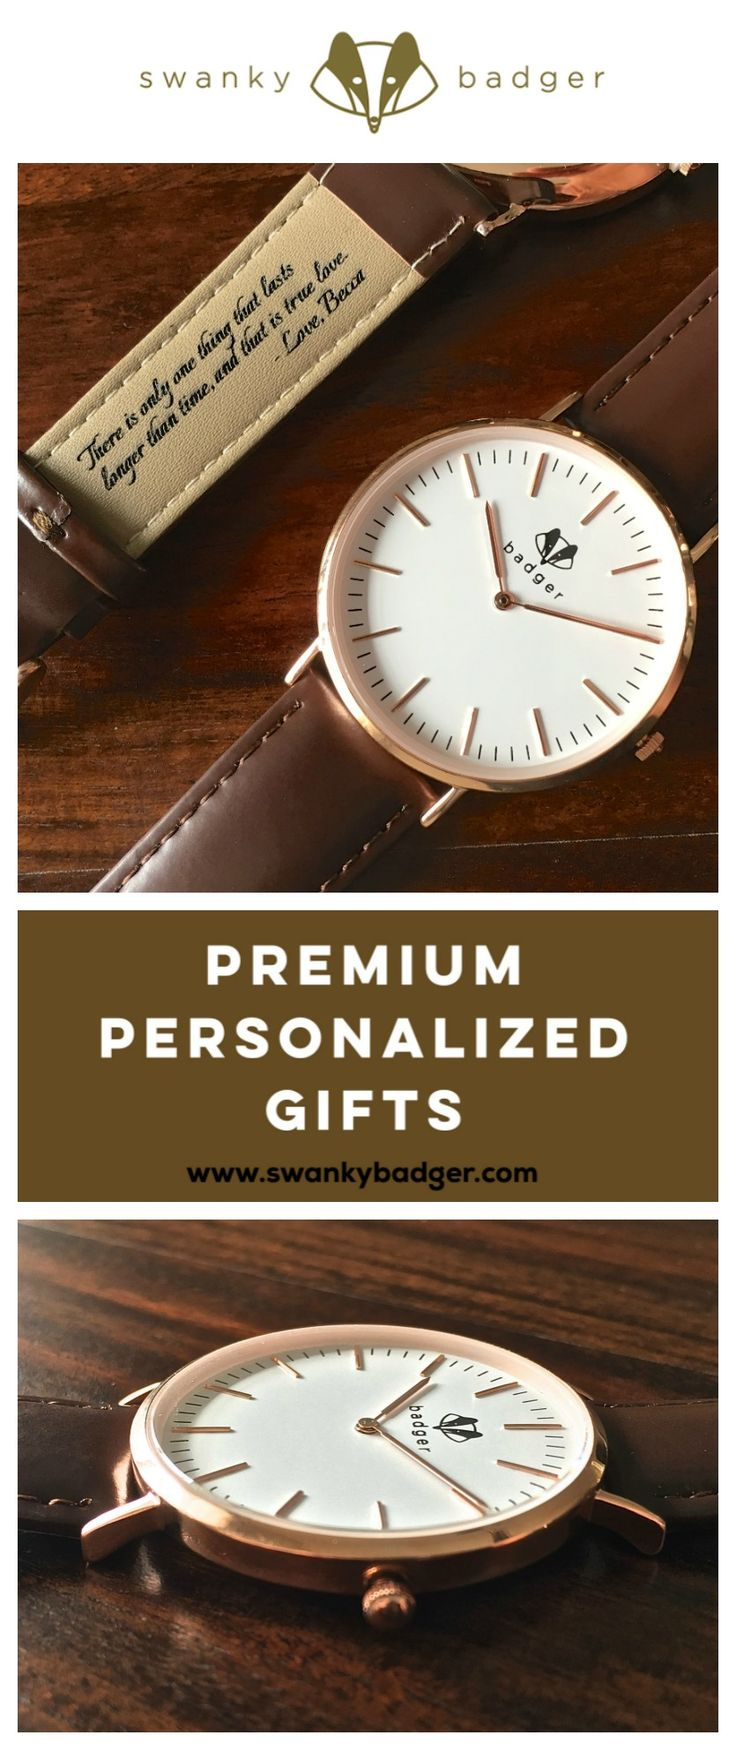 Personalized Rose Gold watch by Swanky Badger www.swankybadger.com is an awesome gift for any special man in your life. Engrave the inside of the band with up to 20 words. www.swankybadger.com